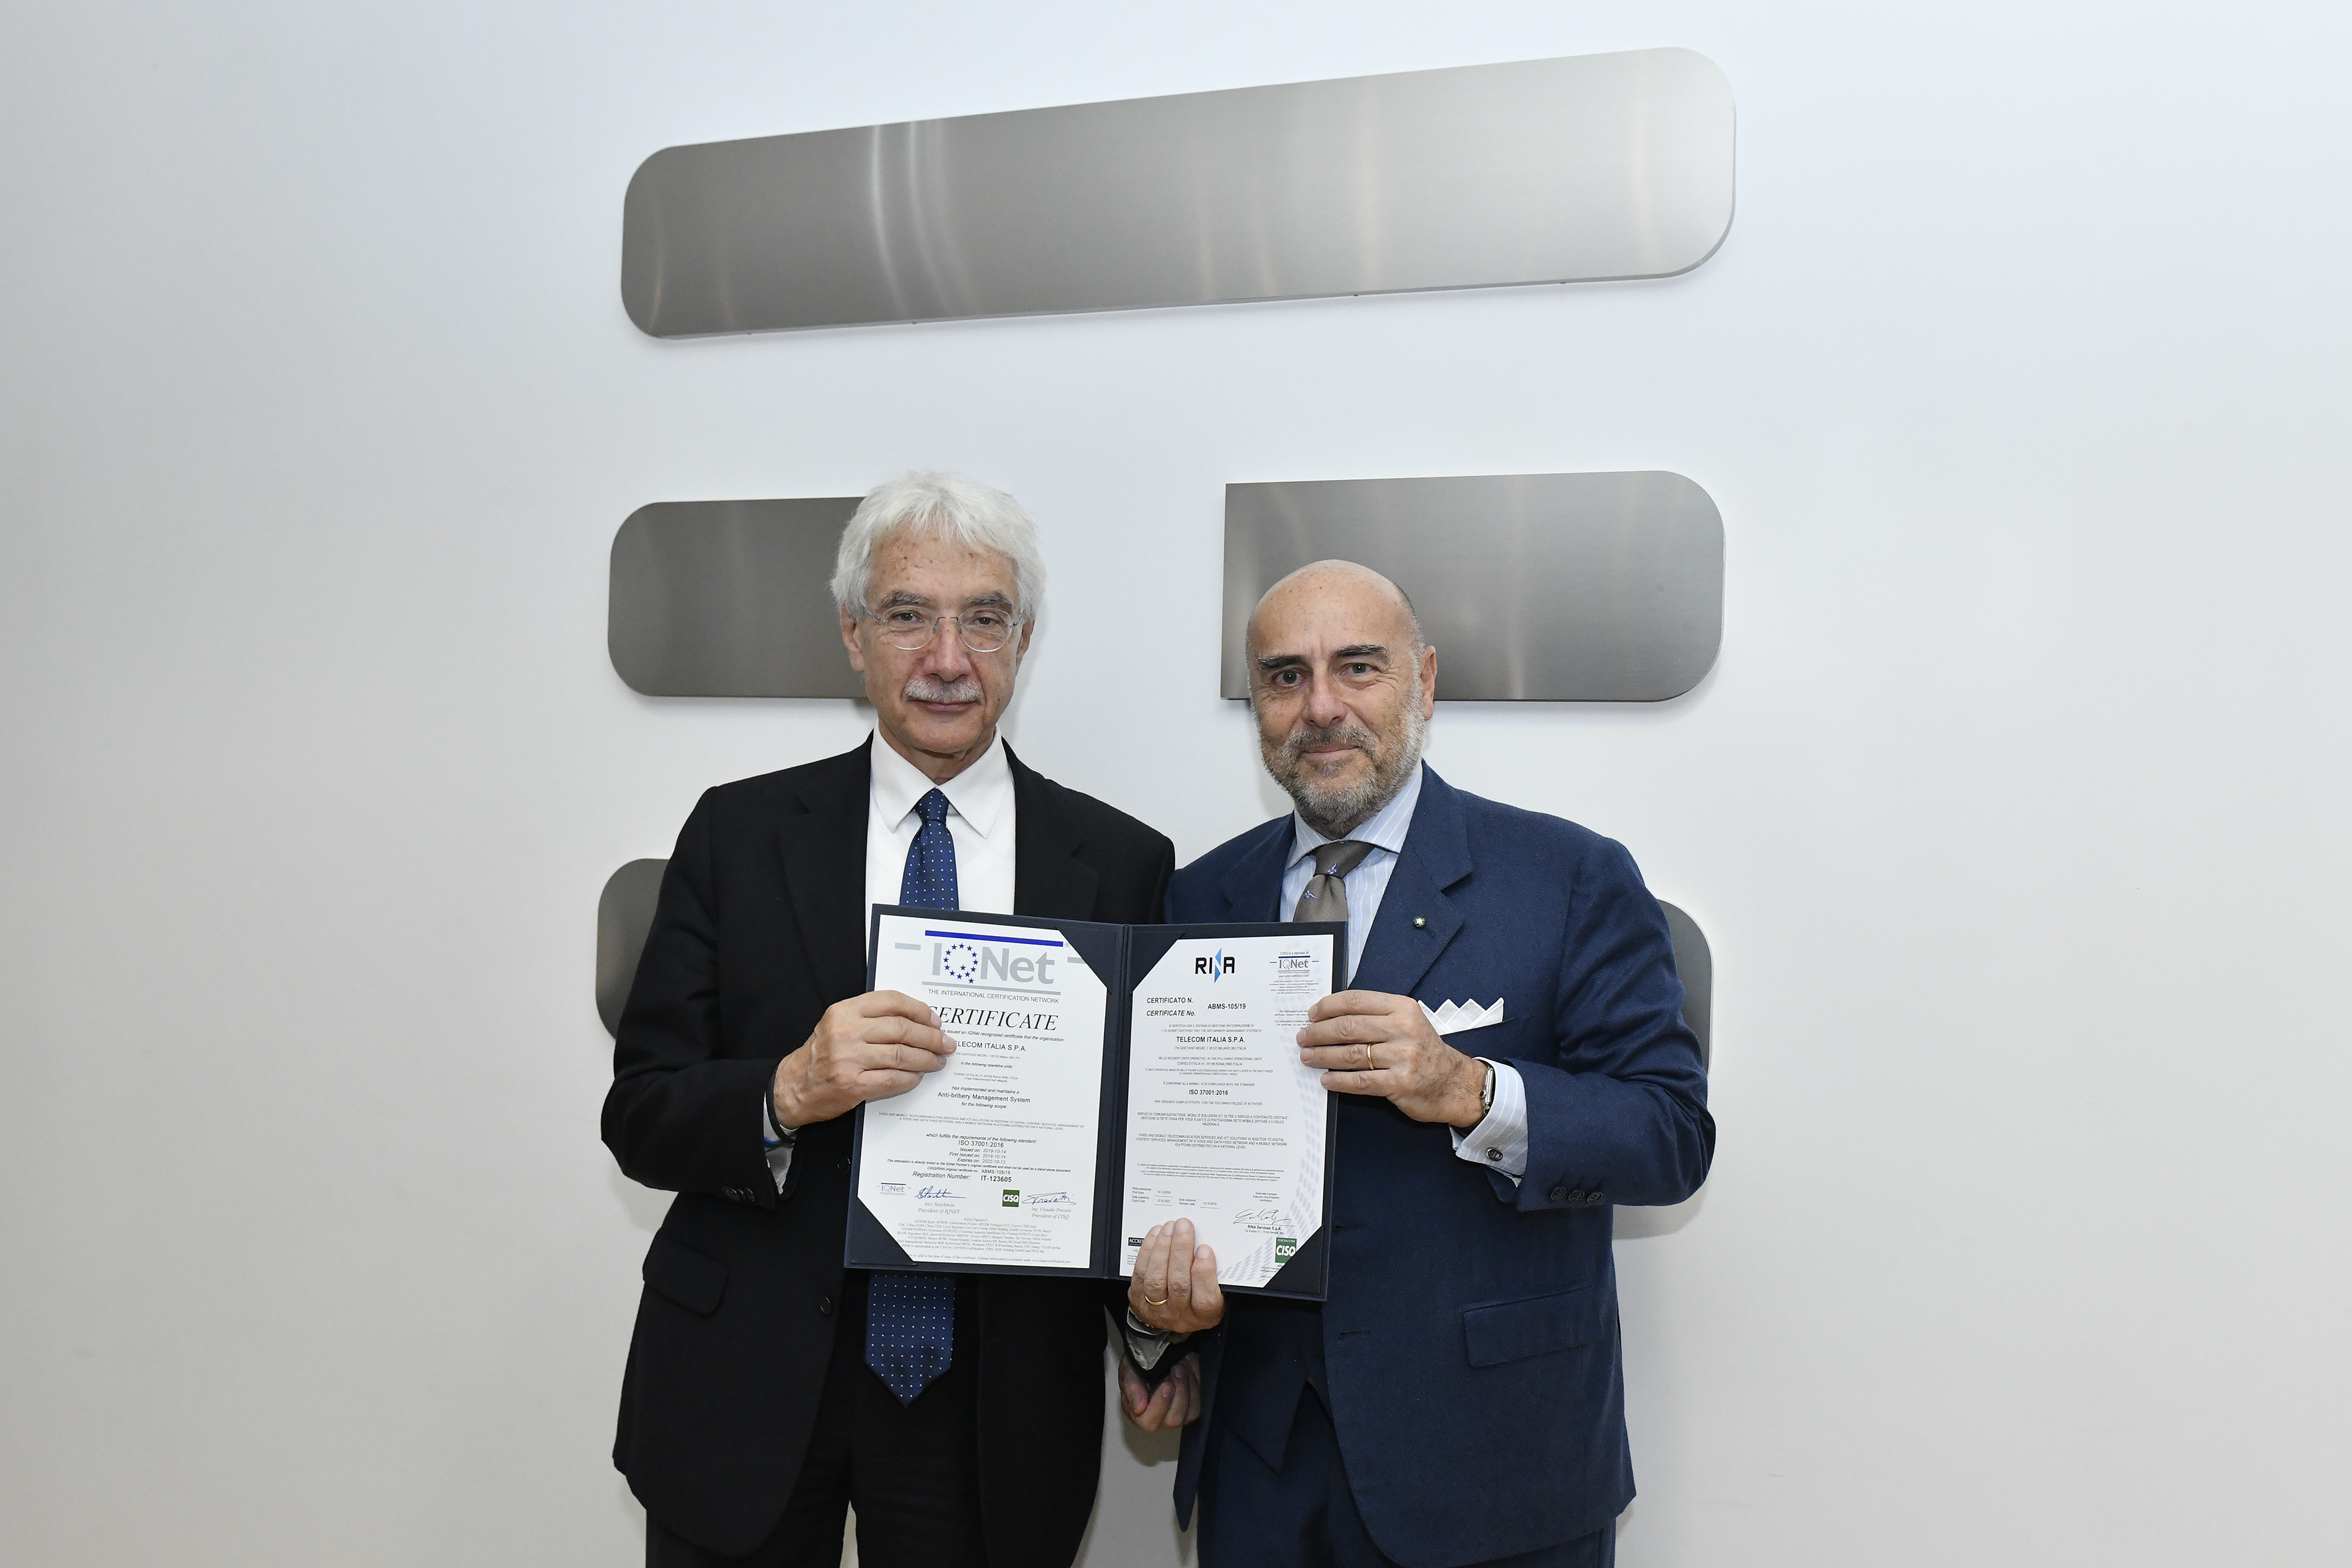 Salvatore Rossi TIM President and Ugo Salerno RINA CEO